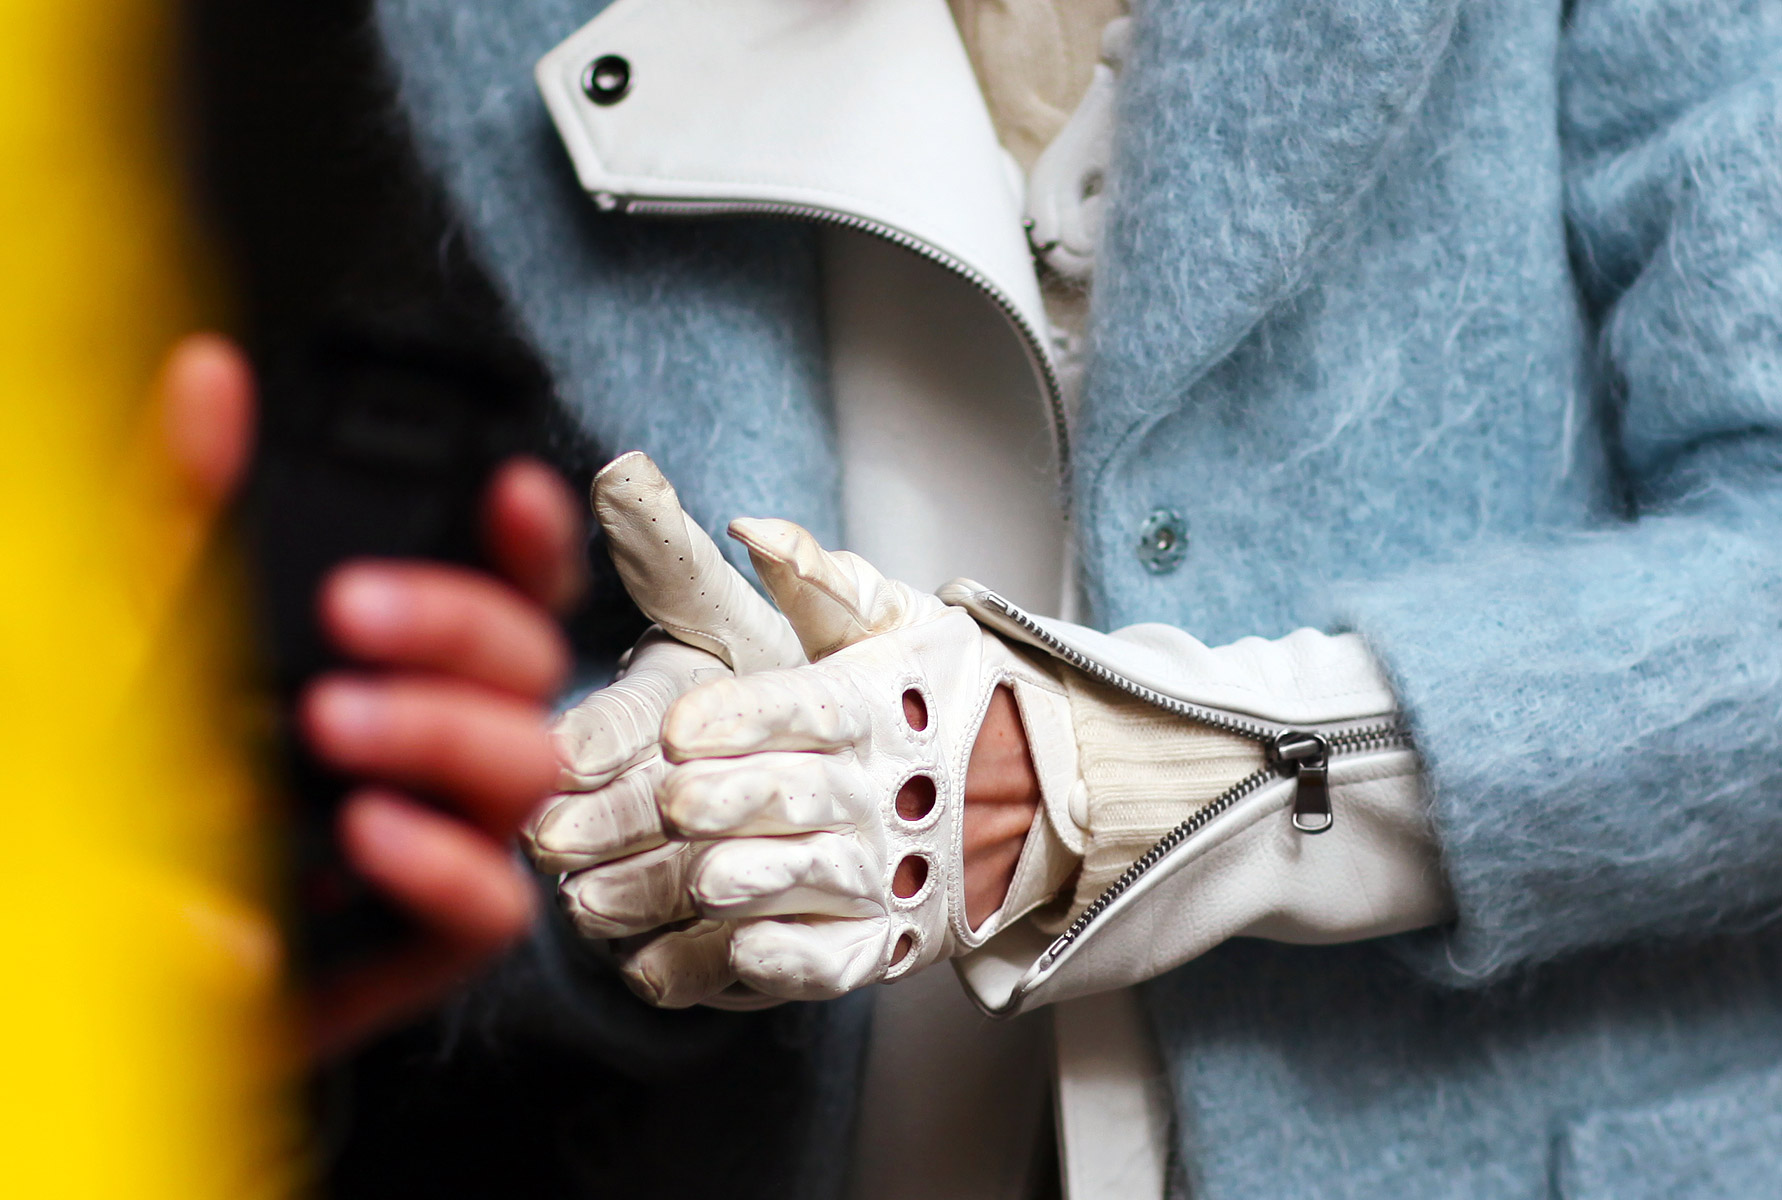 Zippers and White Gloves